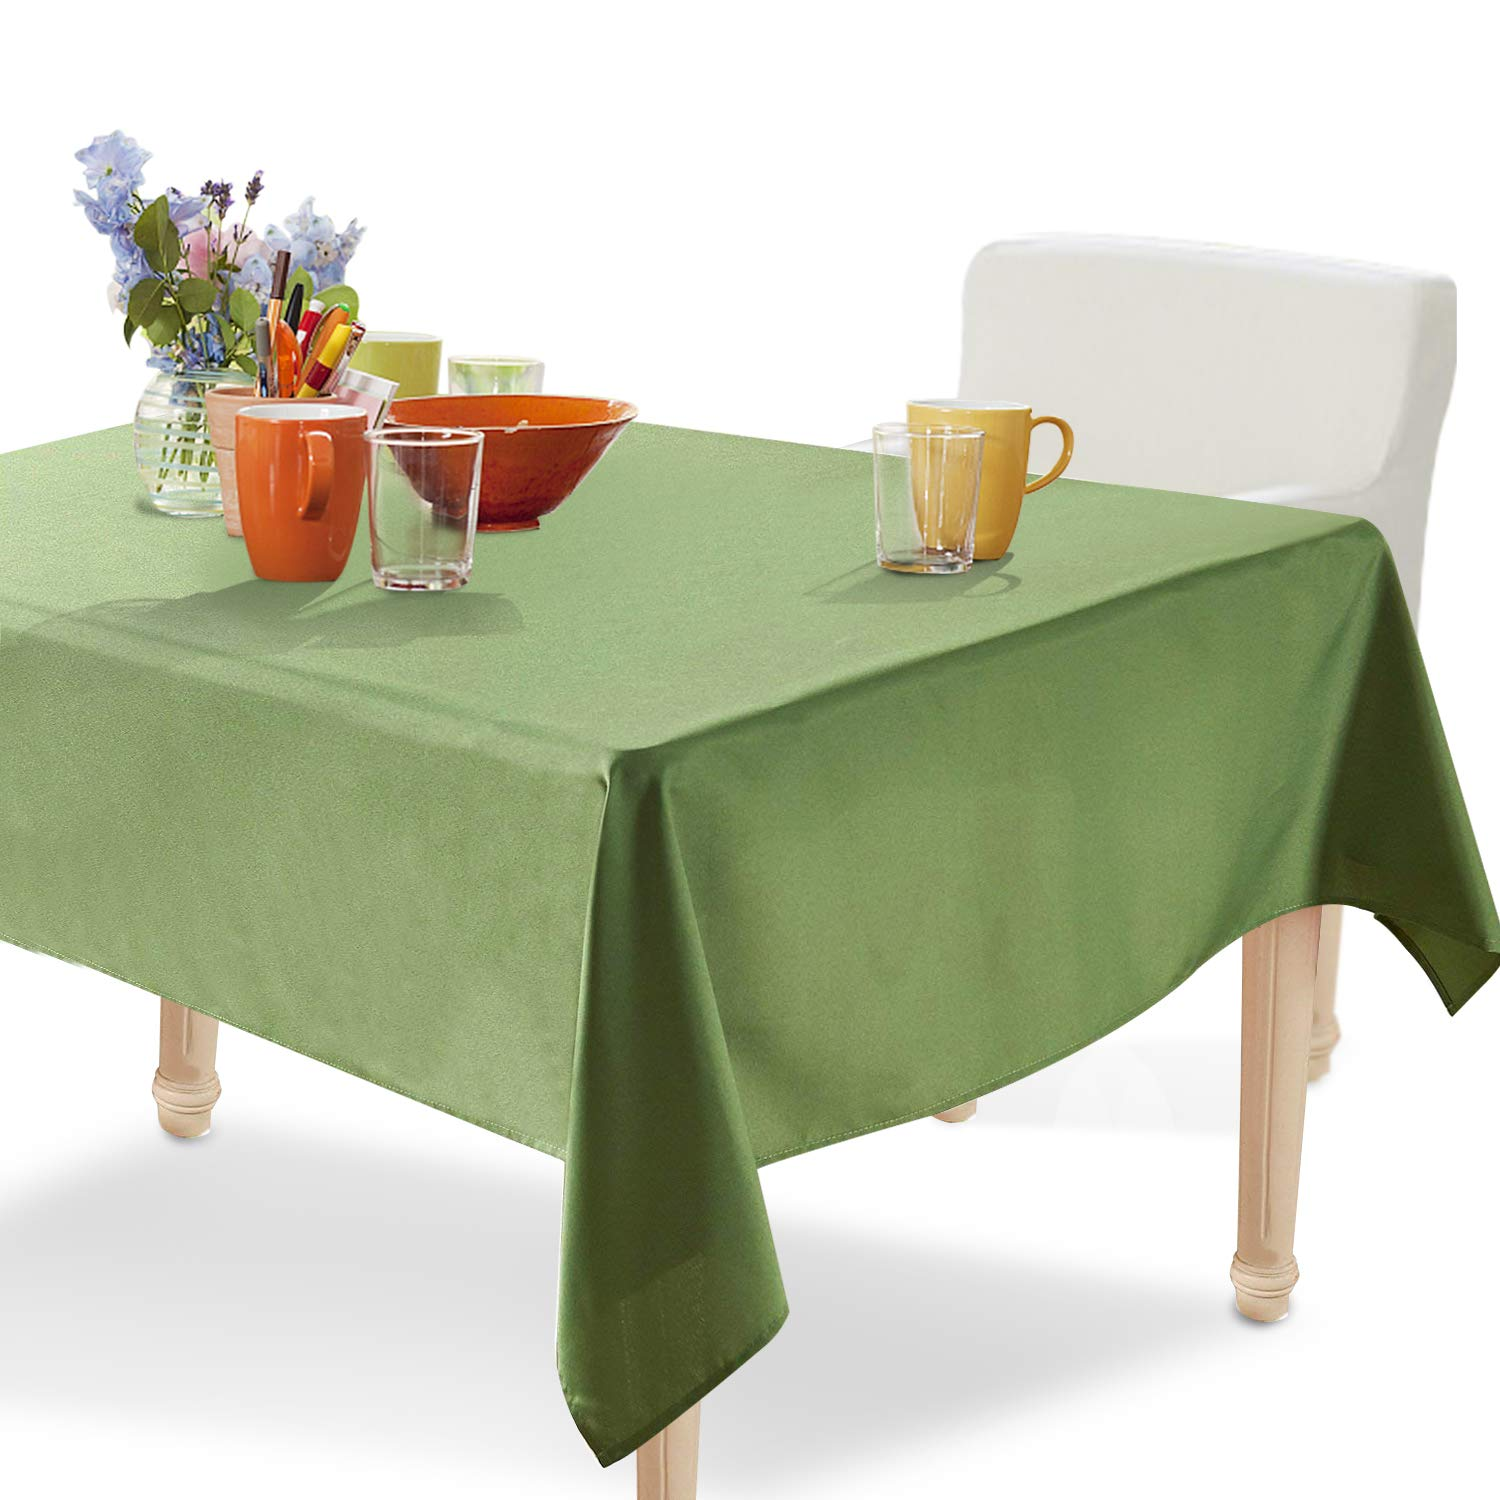 YEMYHOM Rectangle Tablecloth 60 x 84 Inch Spill-Proof Oil-Proof Microfiber Table Cover Machine Washable Indoor Outdoor Rectangular Table Cloth for Spring Summer Party Picnic Camping (Army Green)